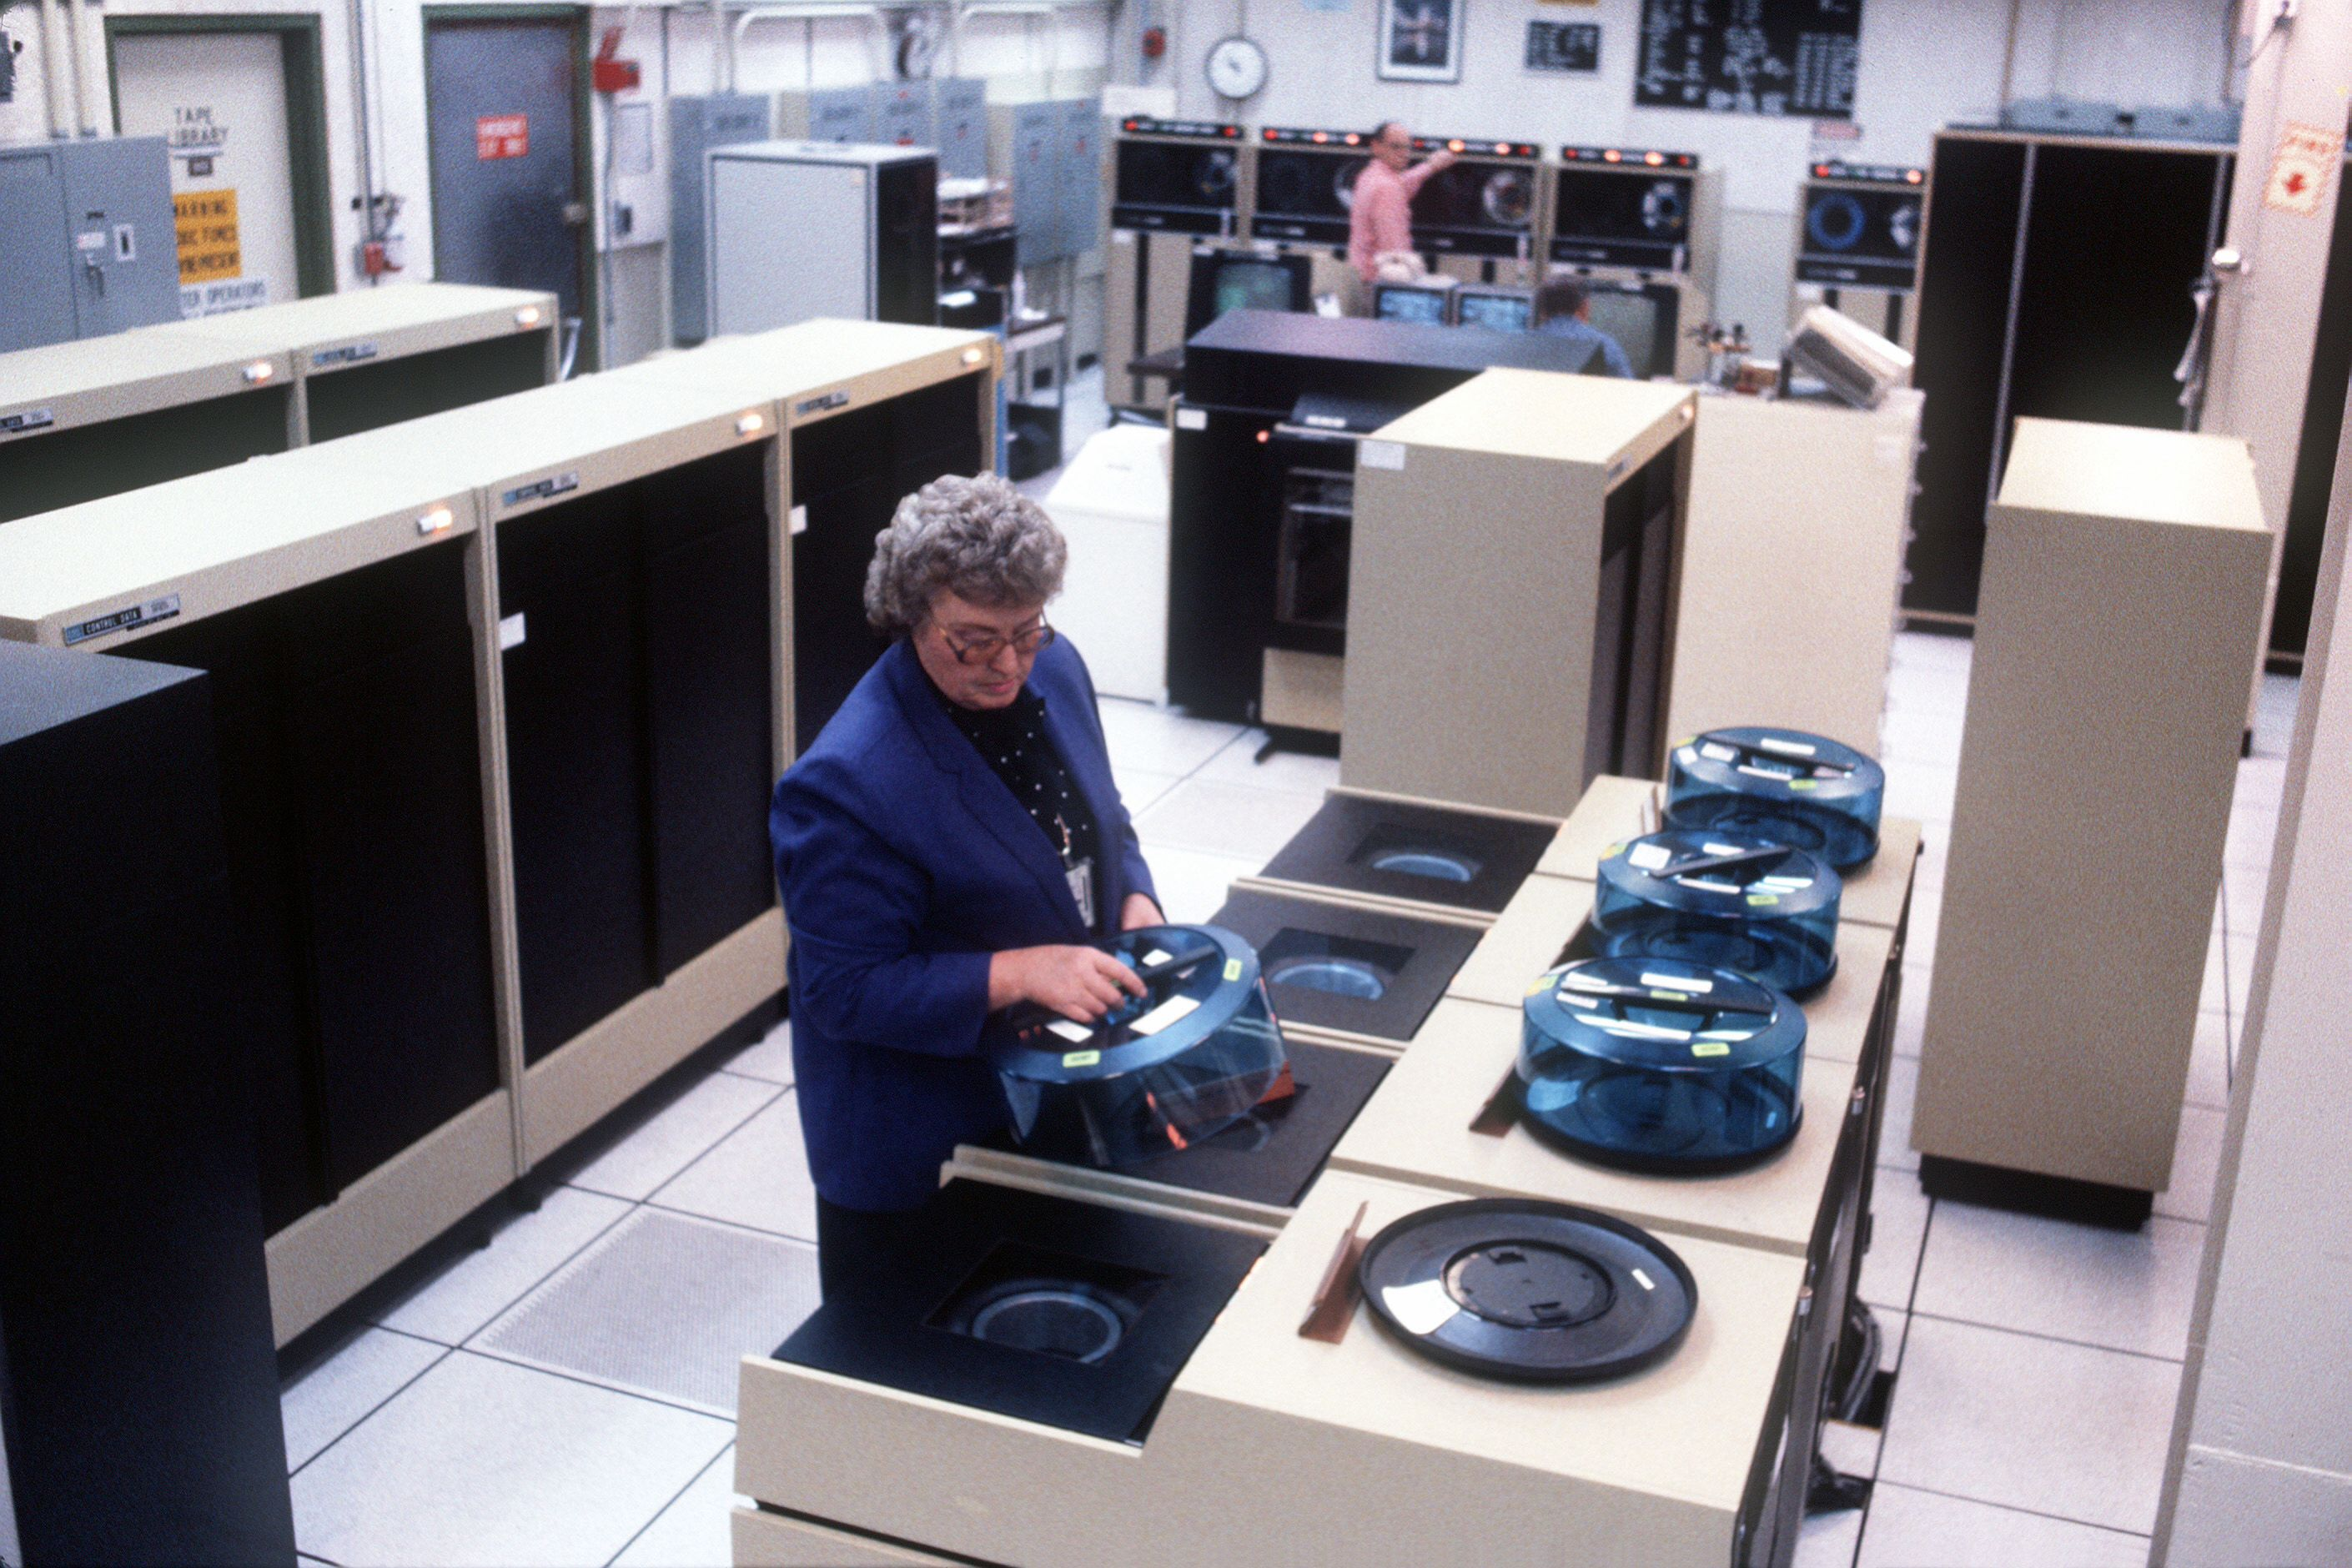 Control Data Cyber Mainframe Computer System Old Computers Old Technology Computer History